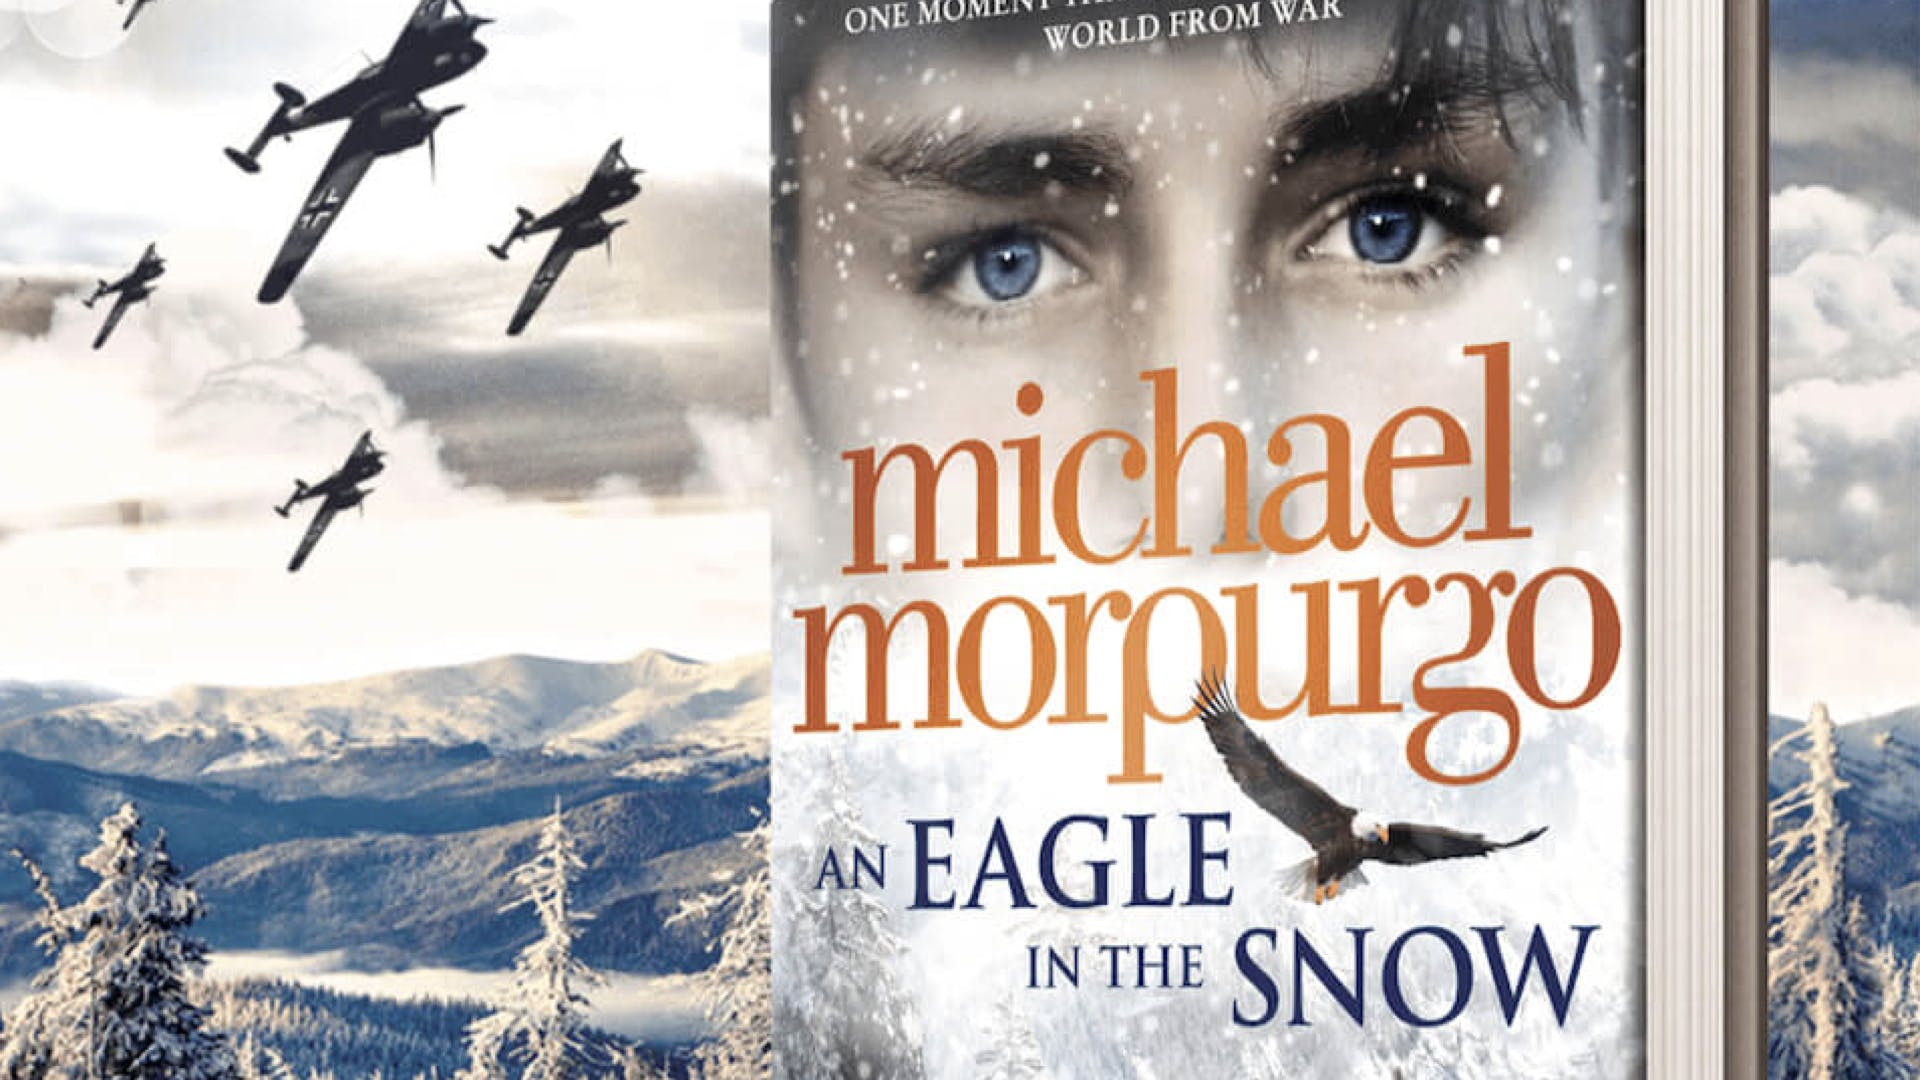 An Eagle in the Snow - Michael Morpurgo and Michael Foreman